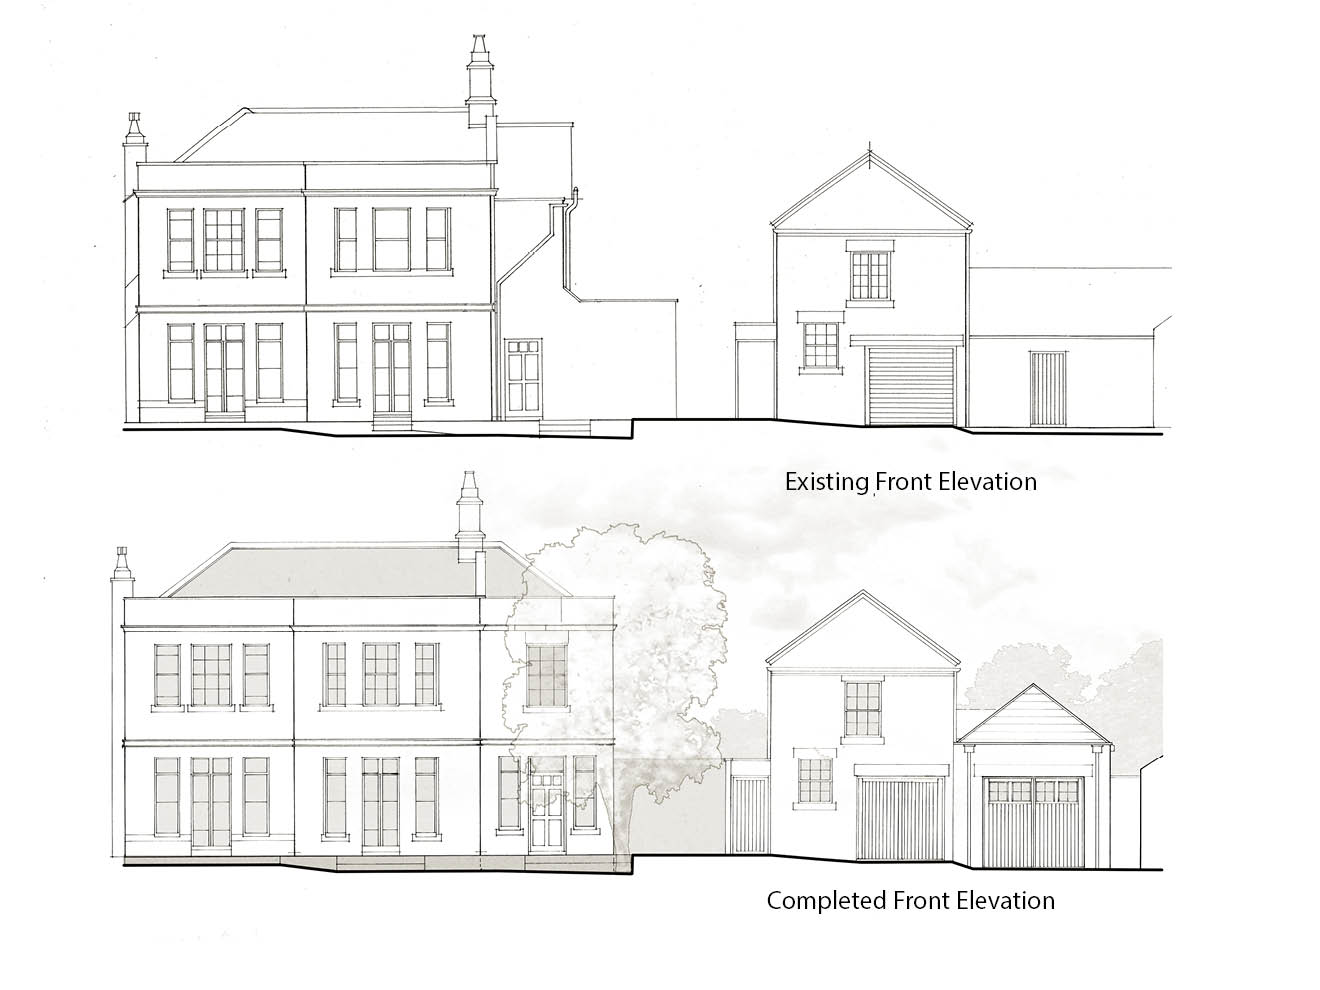 Additional News - Planning permission and listed building consent have been granted for a Grade II listed property within the Bath City-wide conservation area